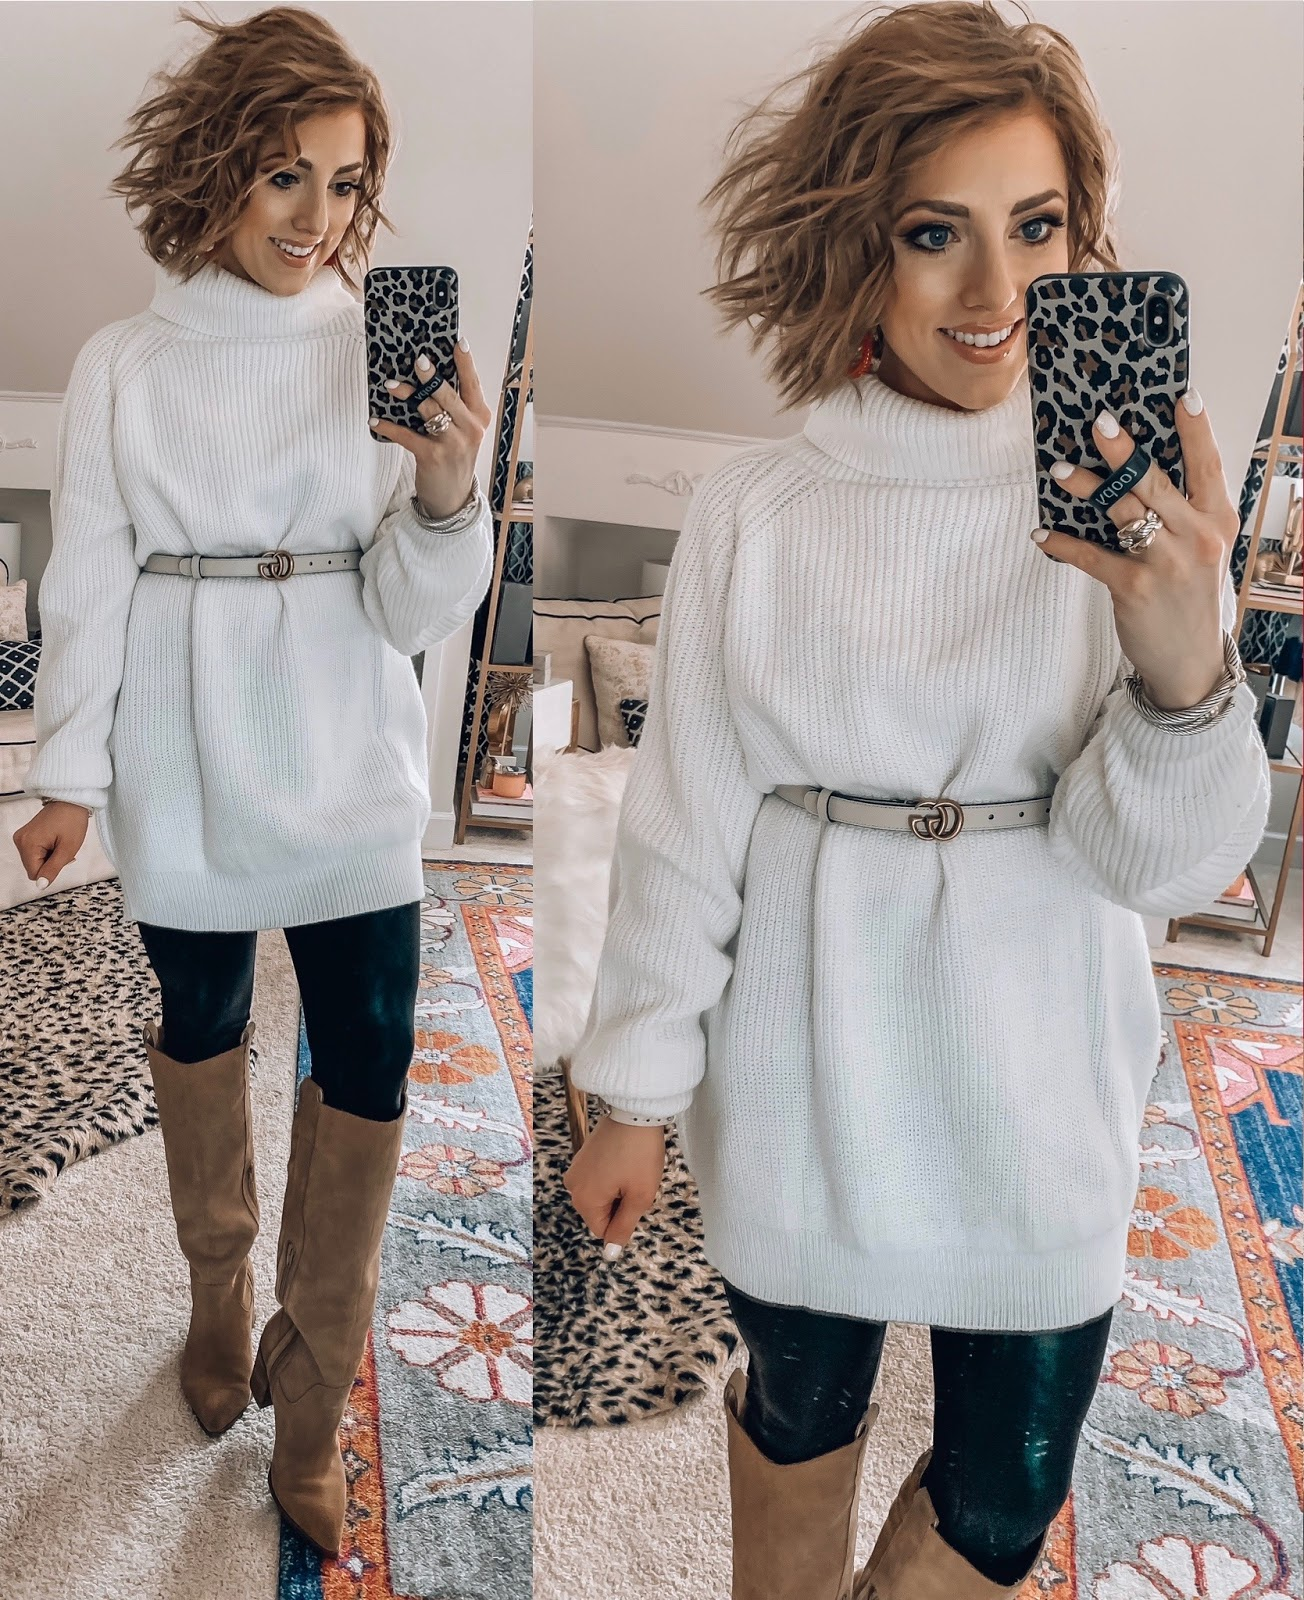 Recent Amazon Finds - Under $40 Sweater over Faux Leather Leggings - Something Delightful Blog #AmazonFashion #RecentFinds #Hearts #ValentinesDay #AffordableFashion